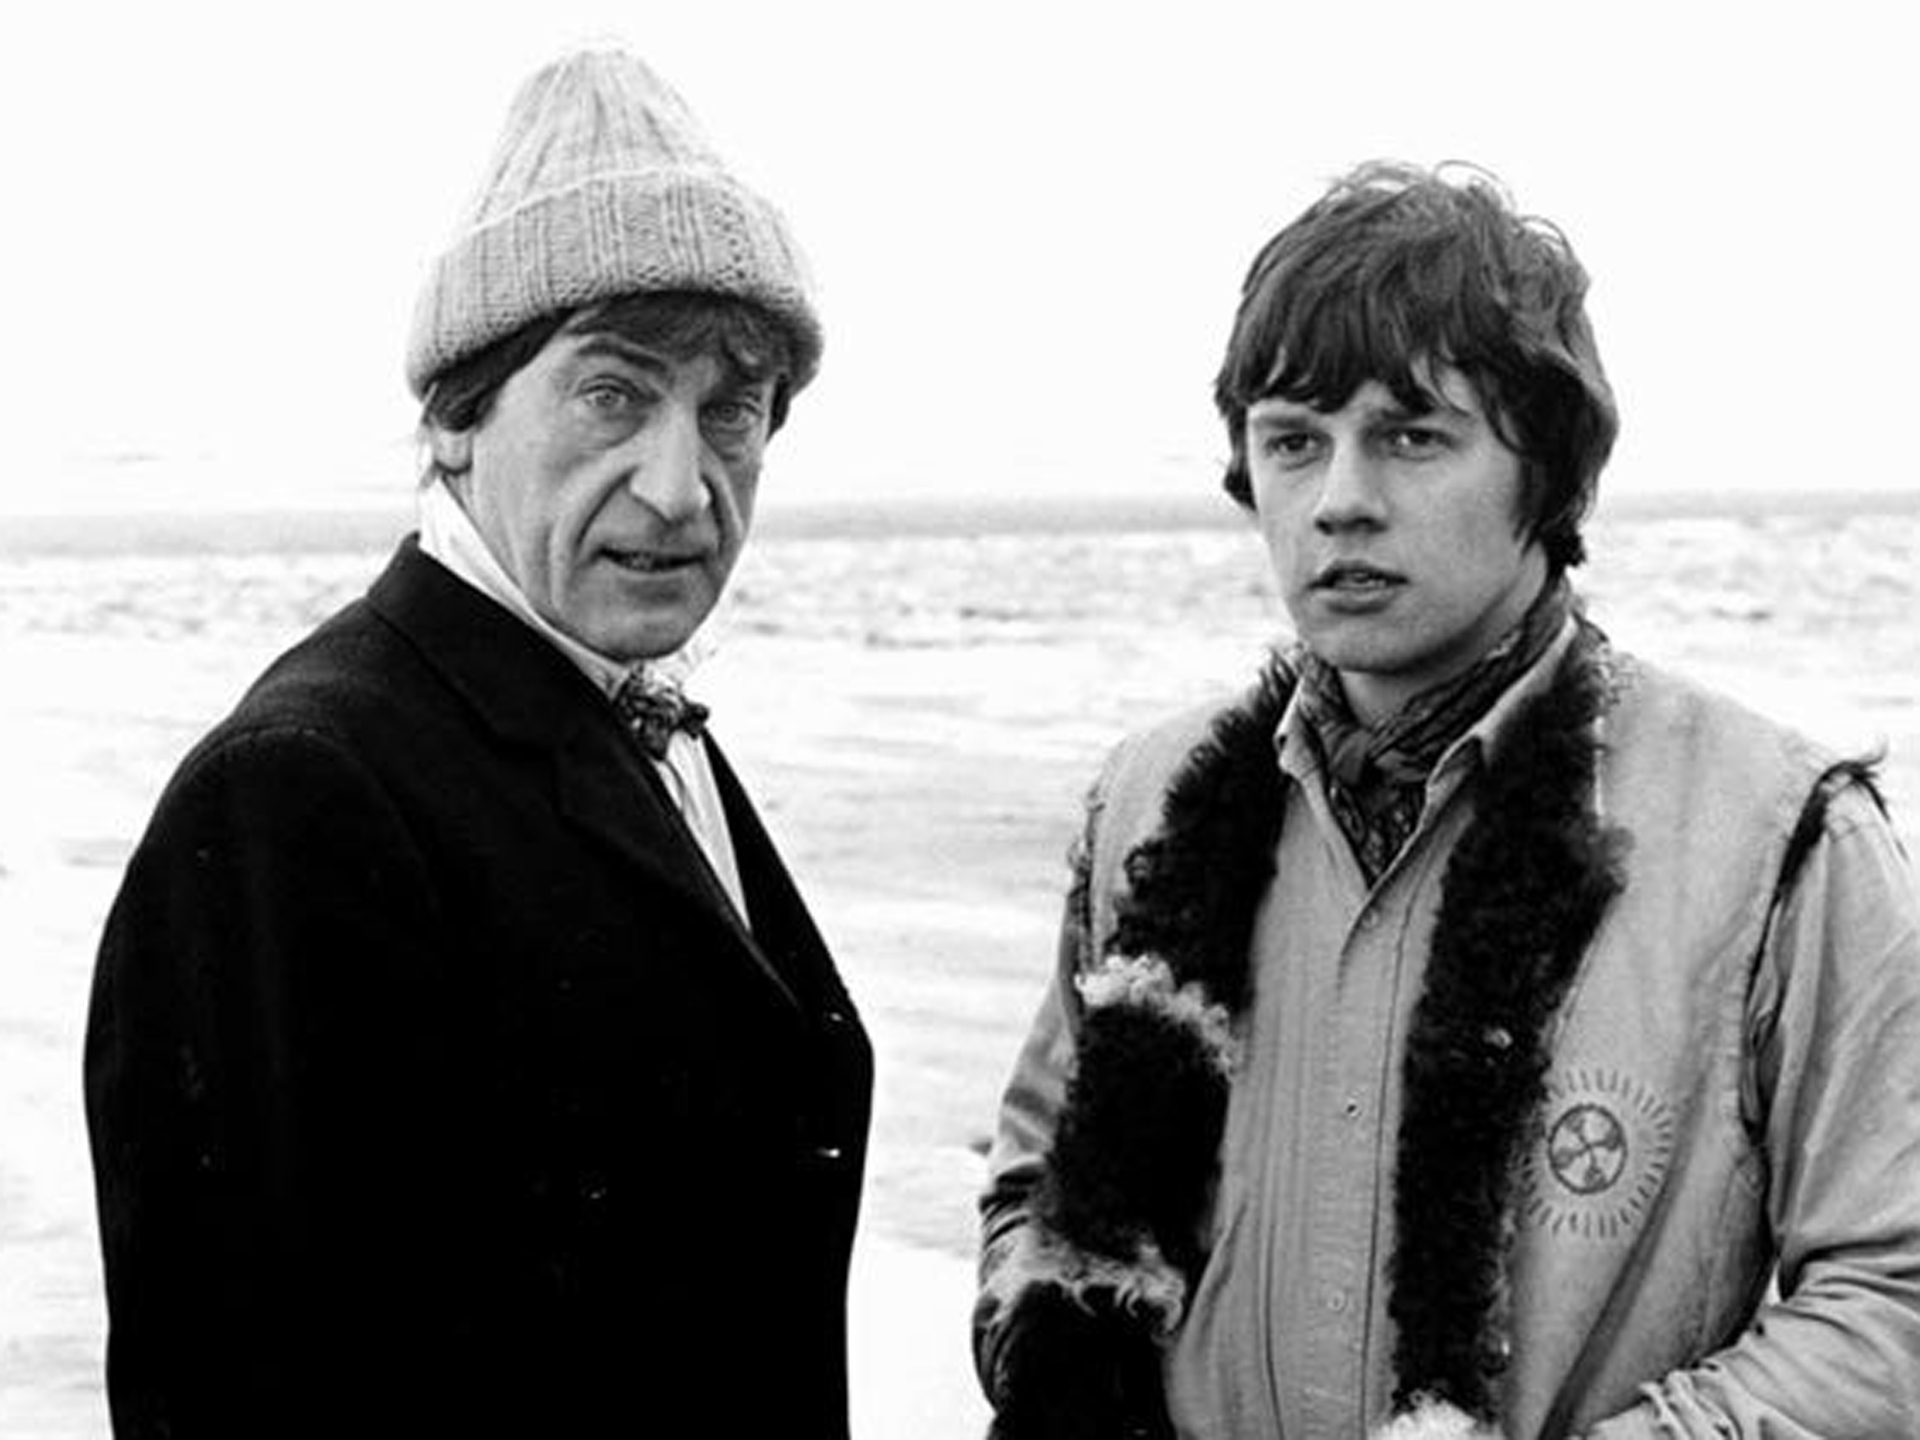 Doctor Who S Frazer Hines On Jamie Mccrimmon Big Finish